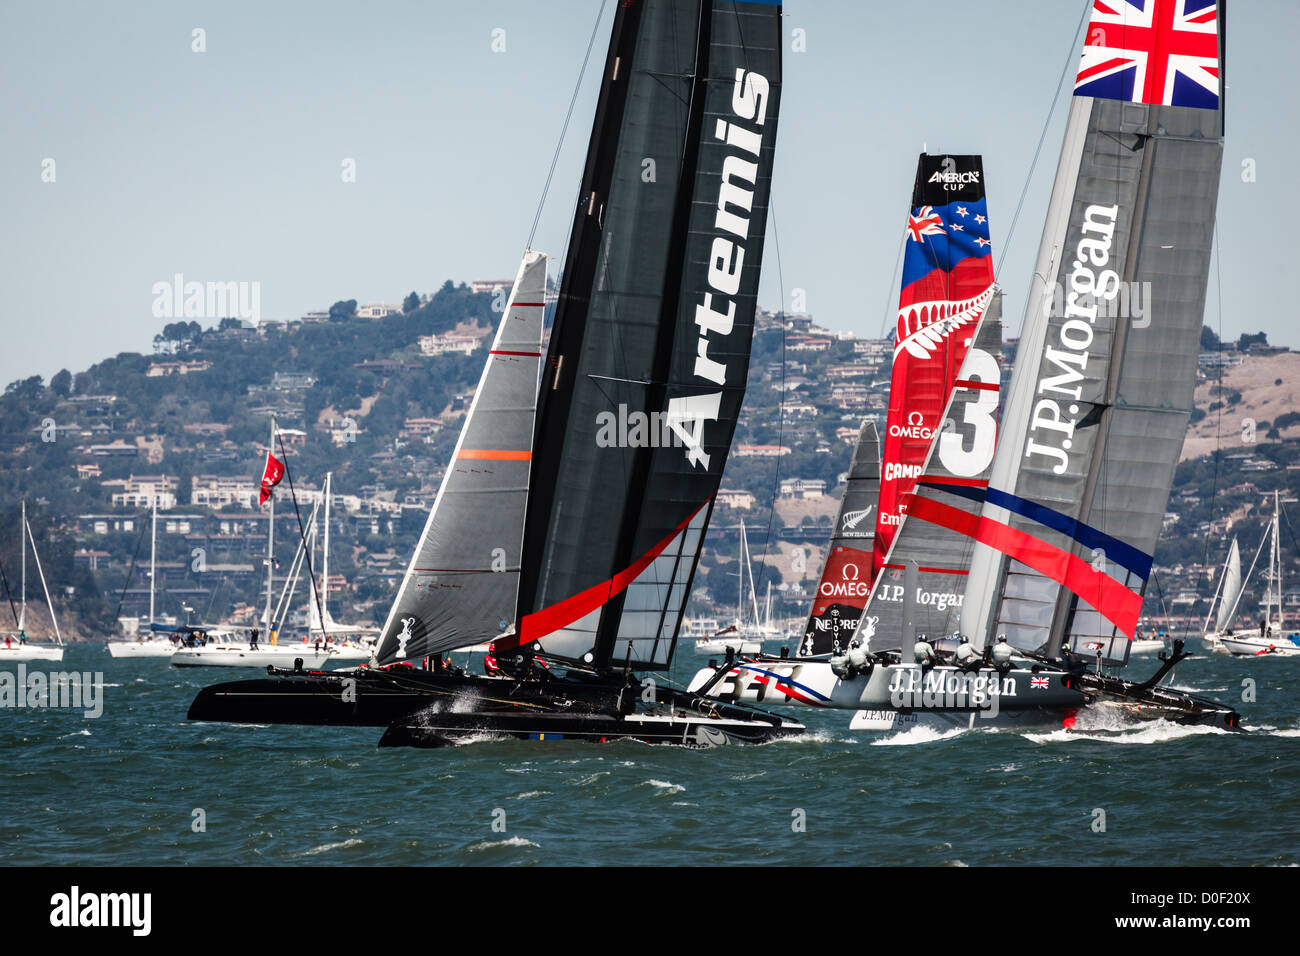 Cluster of competitors in the America's Cup Sailing races for Louis Vuitton Cup on August 25, 2012 in San Francisco - Stock Image